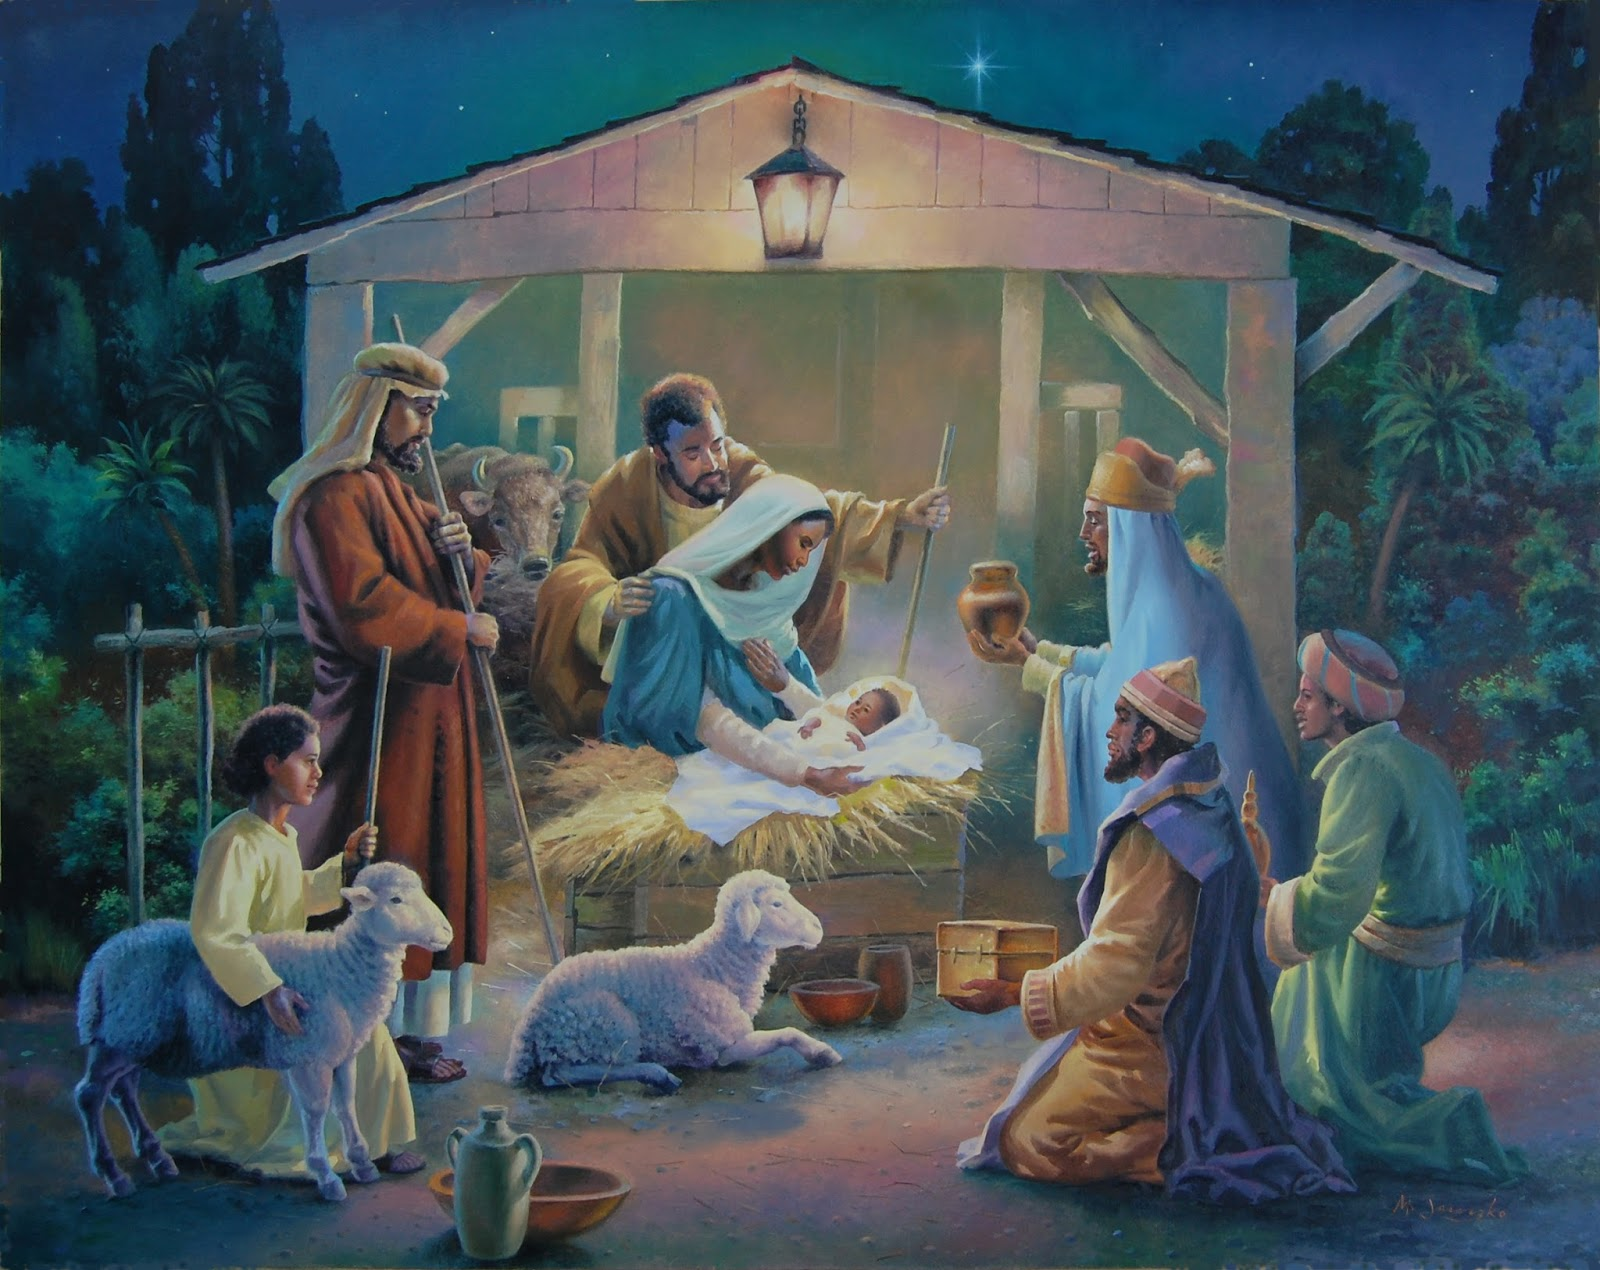 Nativity Scene Painting Nativity scene. painting